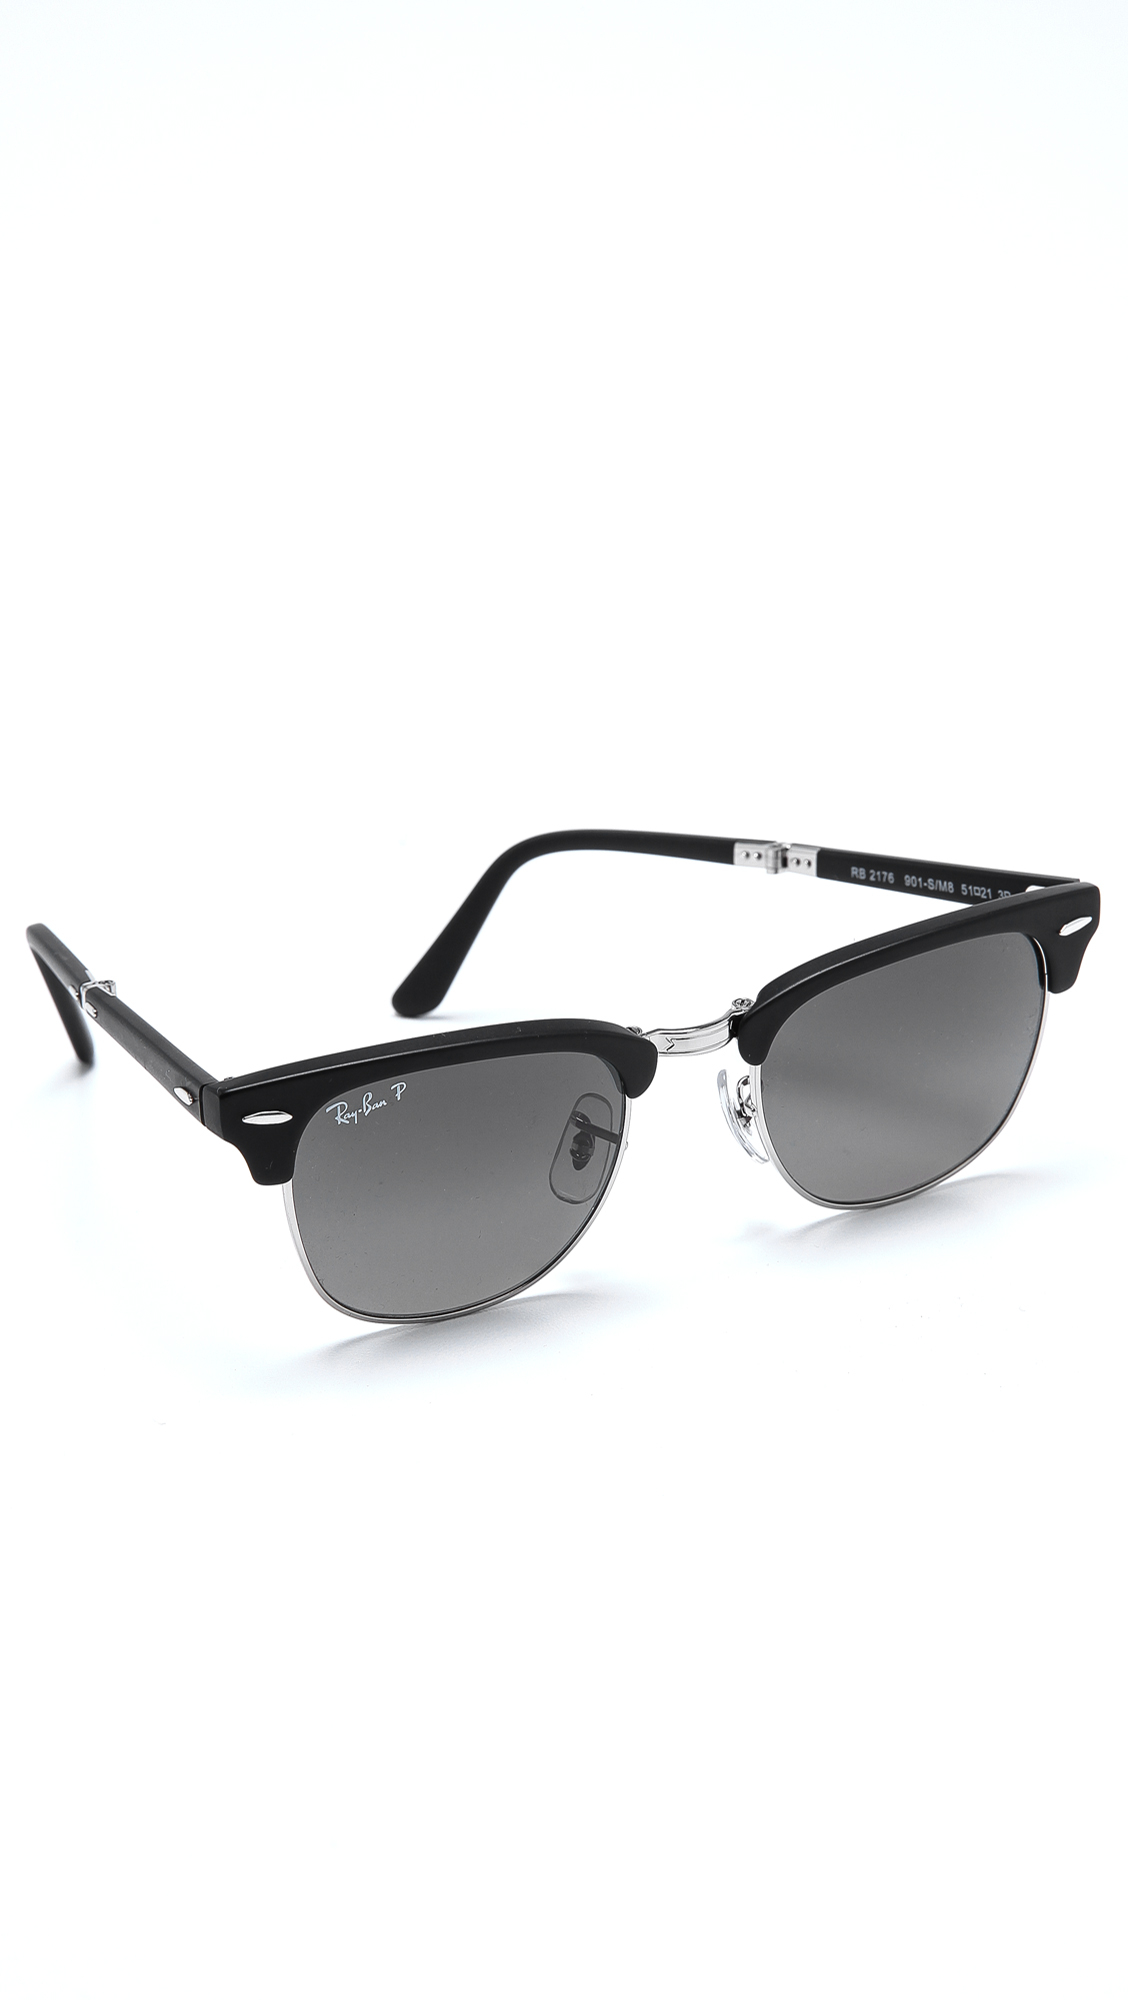 Ray Ban Clubmaster Folding Polarized Sunglasses In Black